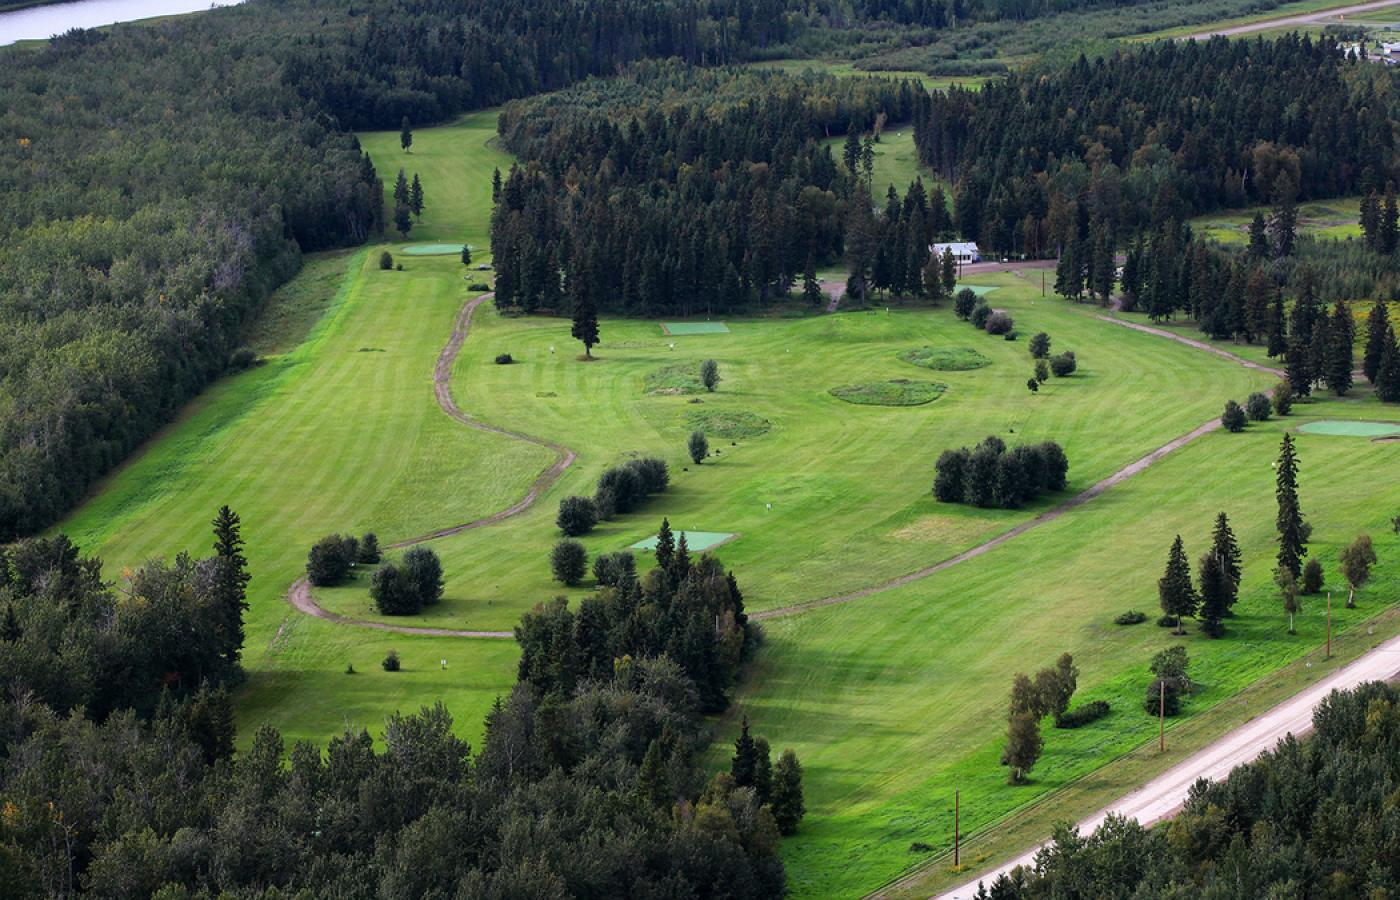 aerial view of golf course in nwt